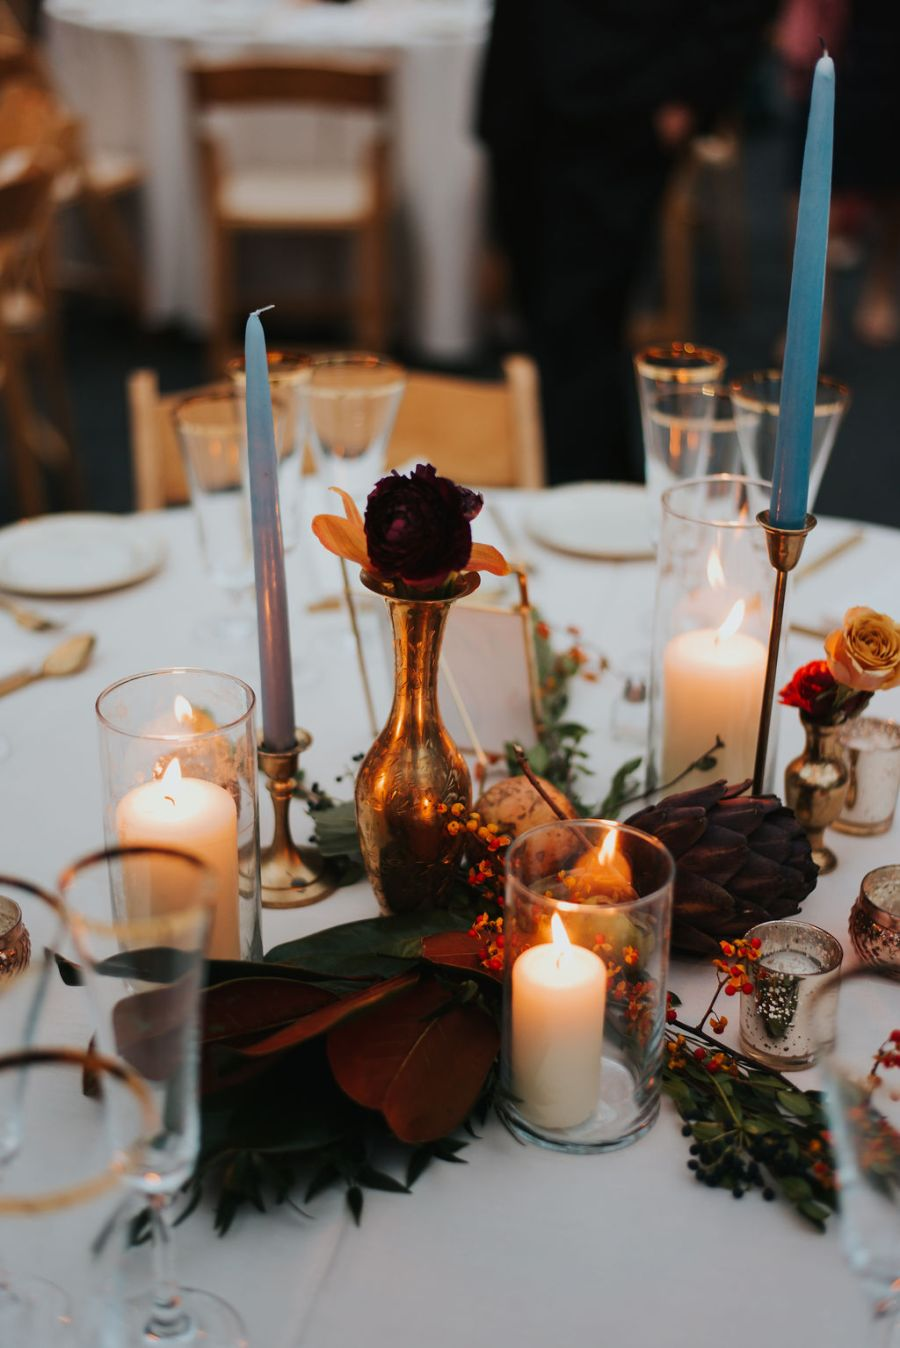 How to Know When Your Wedding Planning Business is Ready to Grow